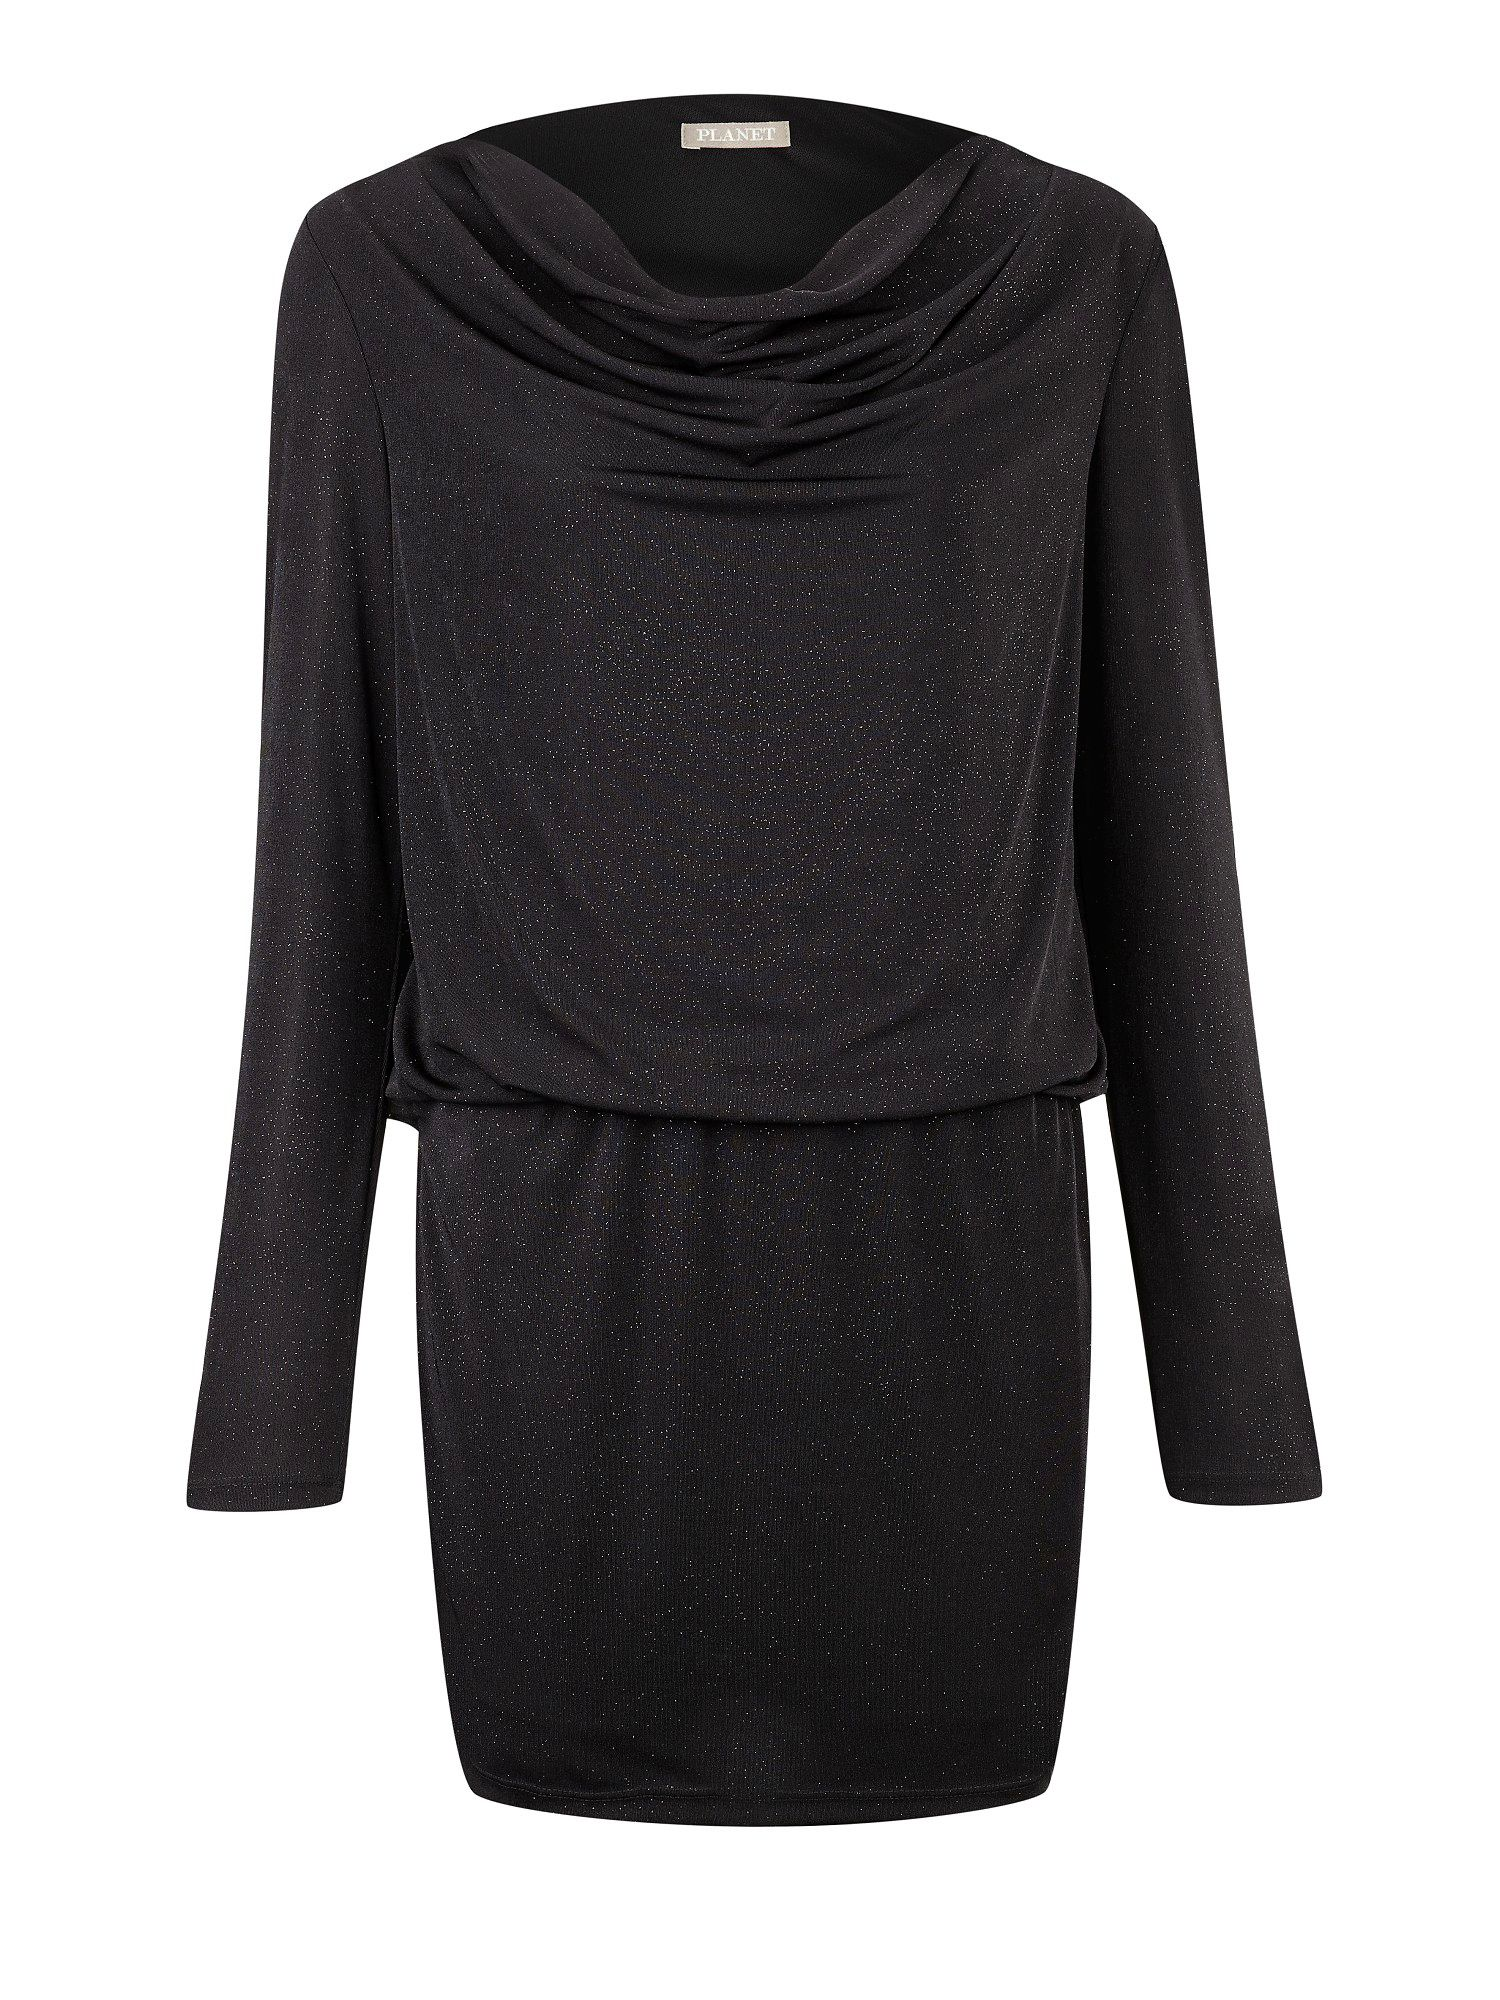 Fit and drape tunic